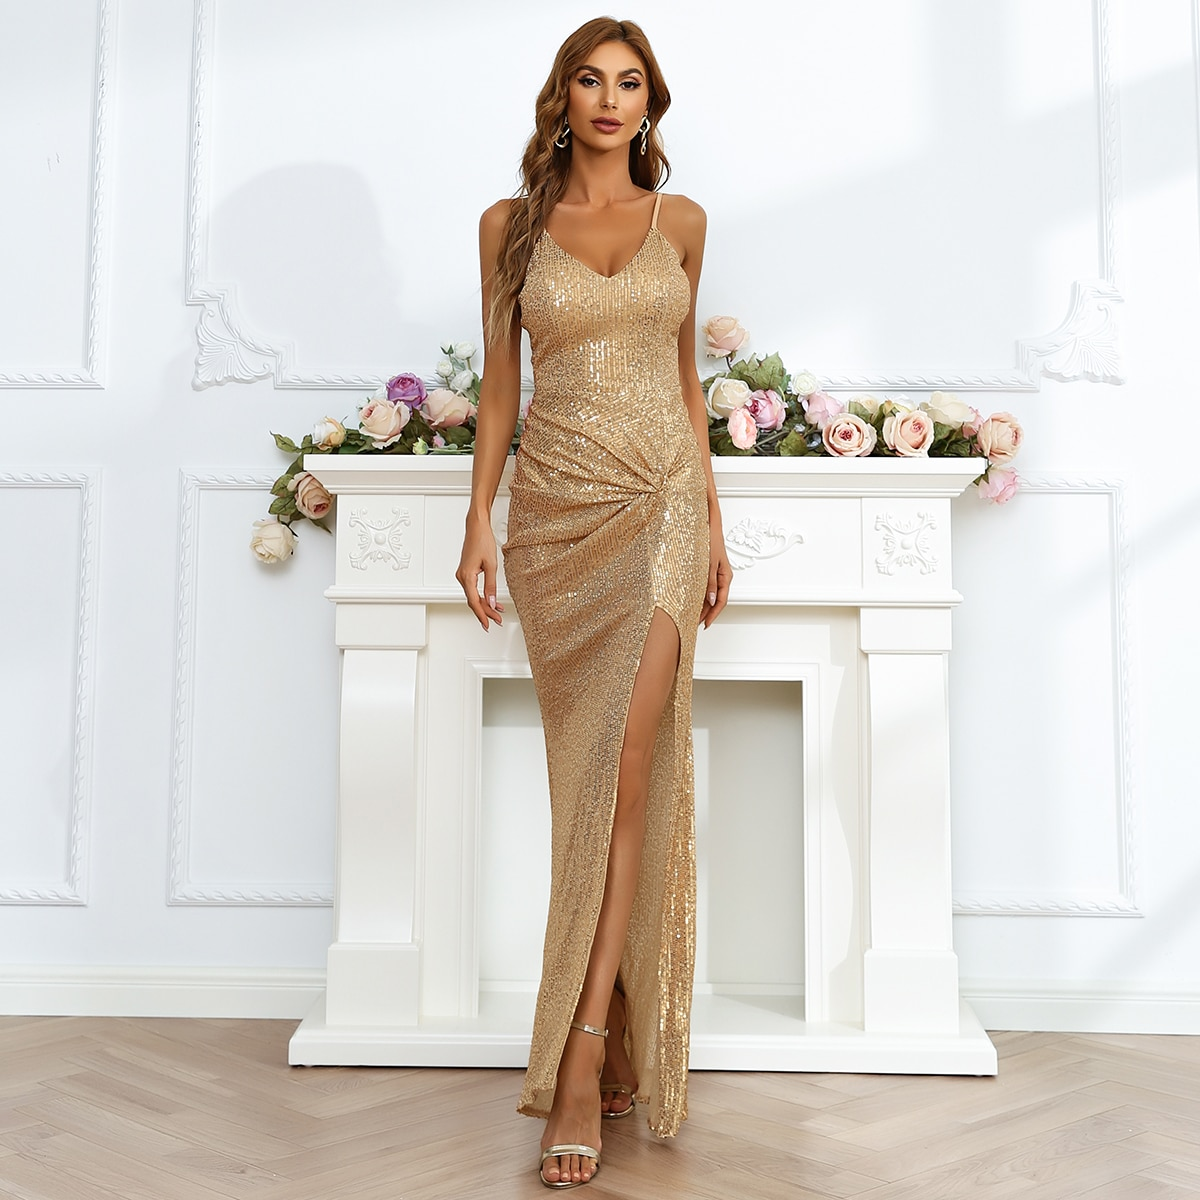 Twisted Split Thigh Cami Sequin Dress